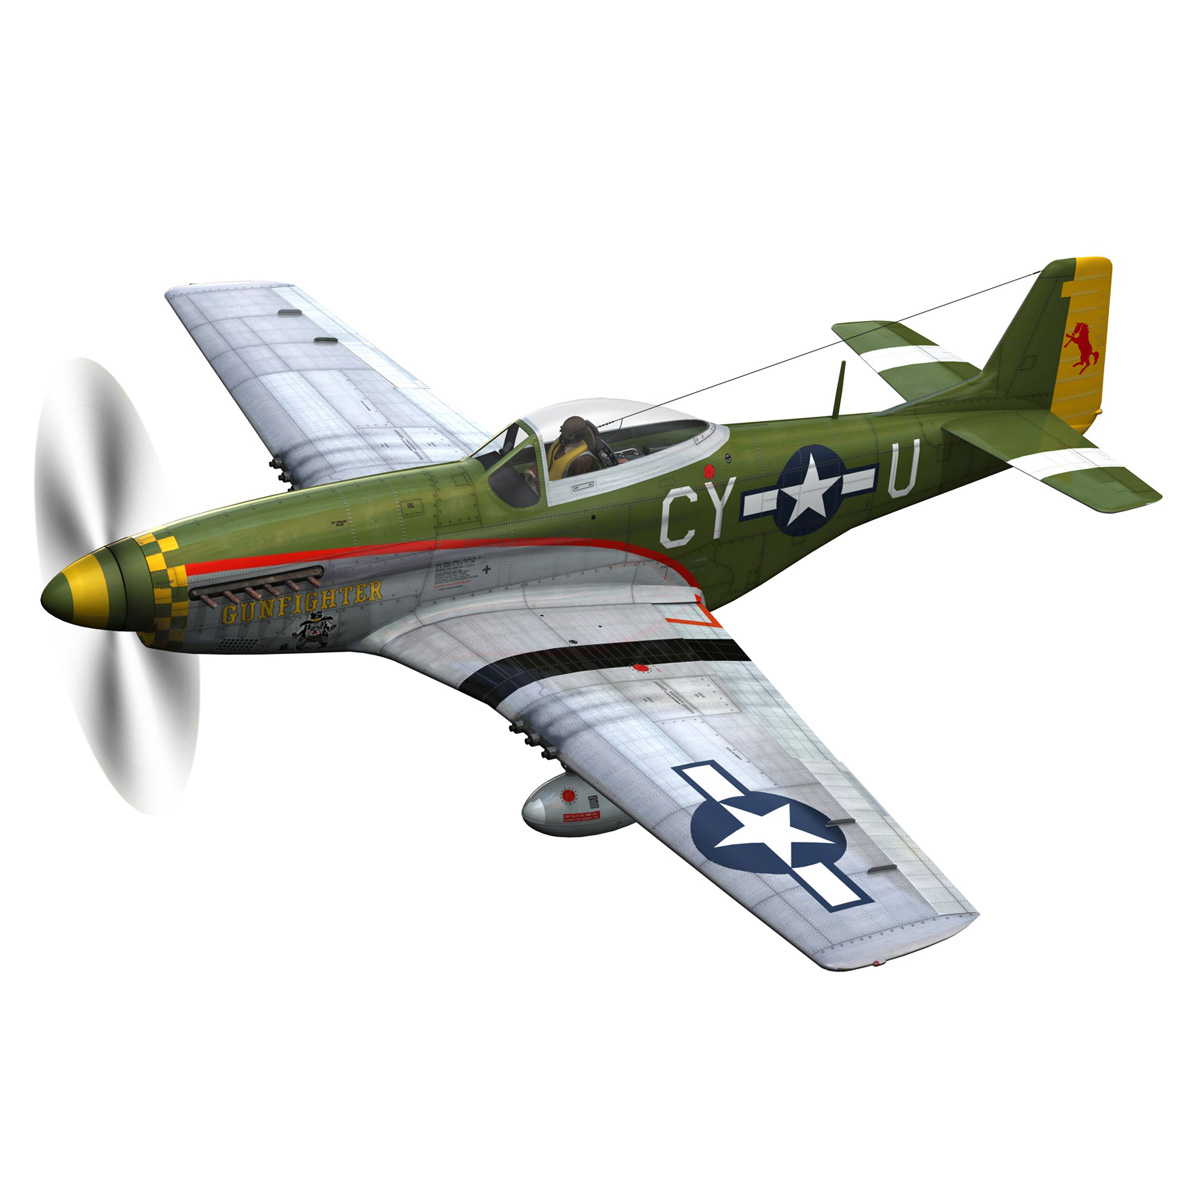 north american p-51d mustang – gunfighter 3d model fbx c4d lwo obj 269571